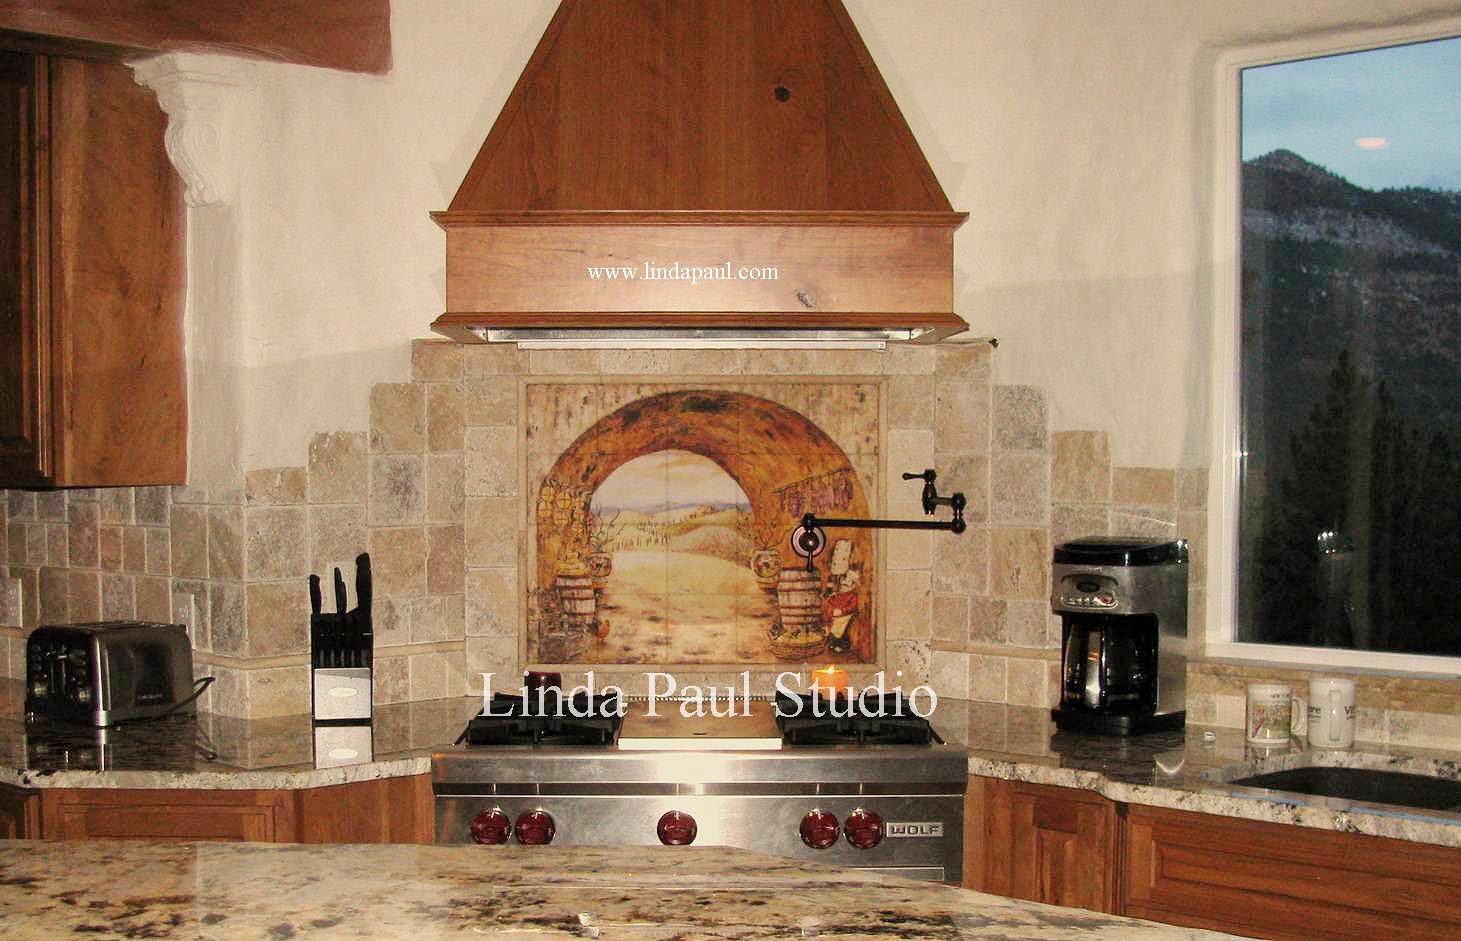 kitchen backsplash ideas gallery tile backsplash pictures love pattern copper backsplash photo